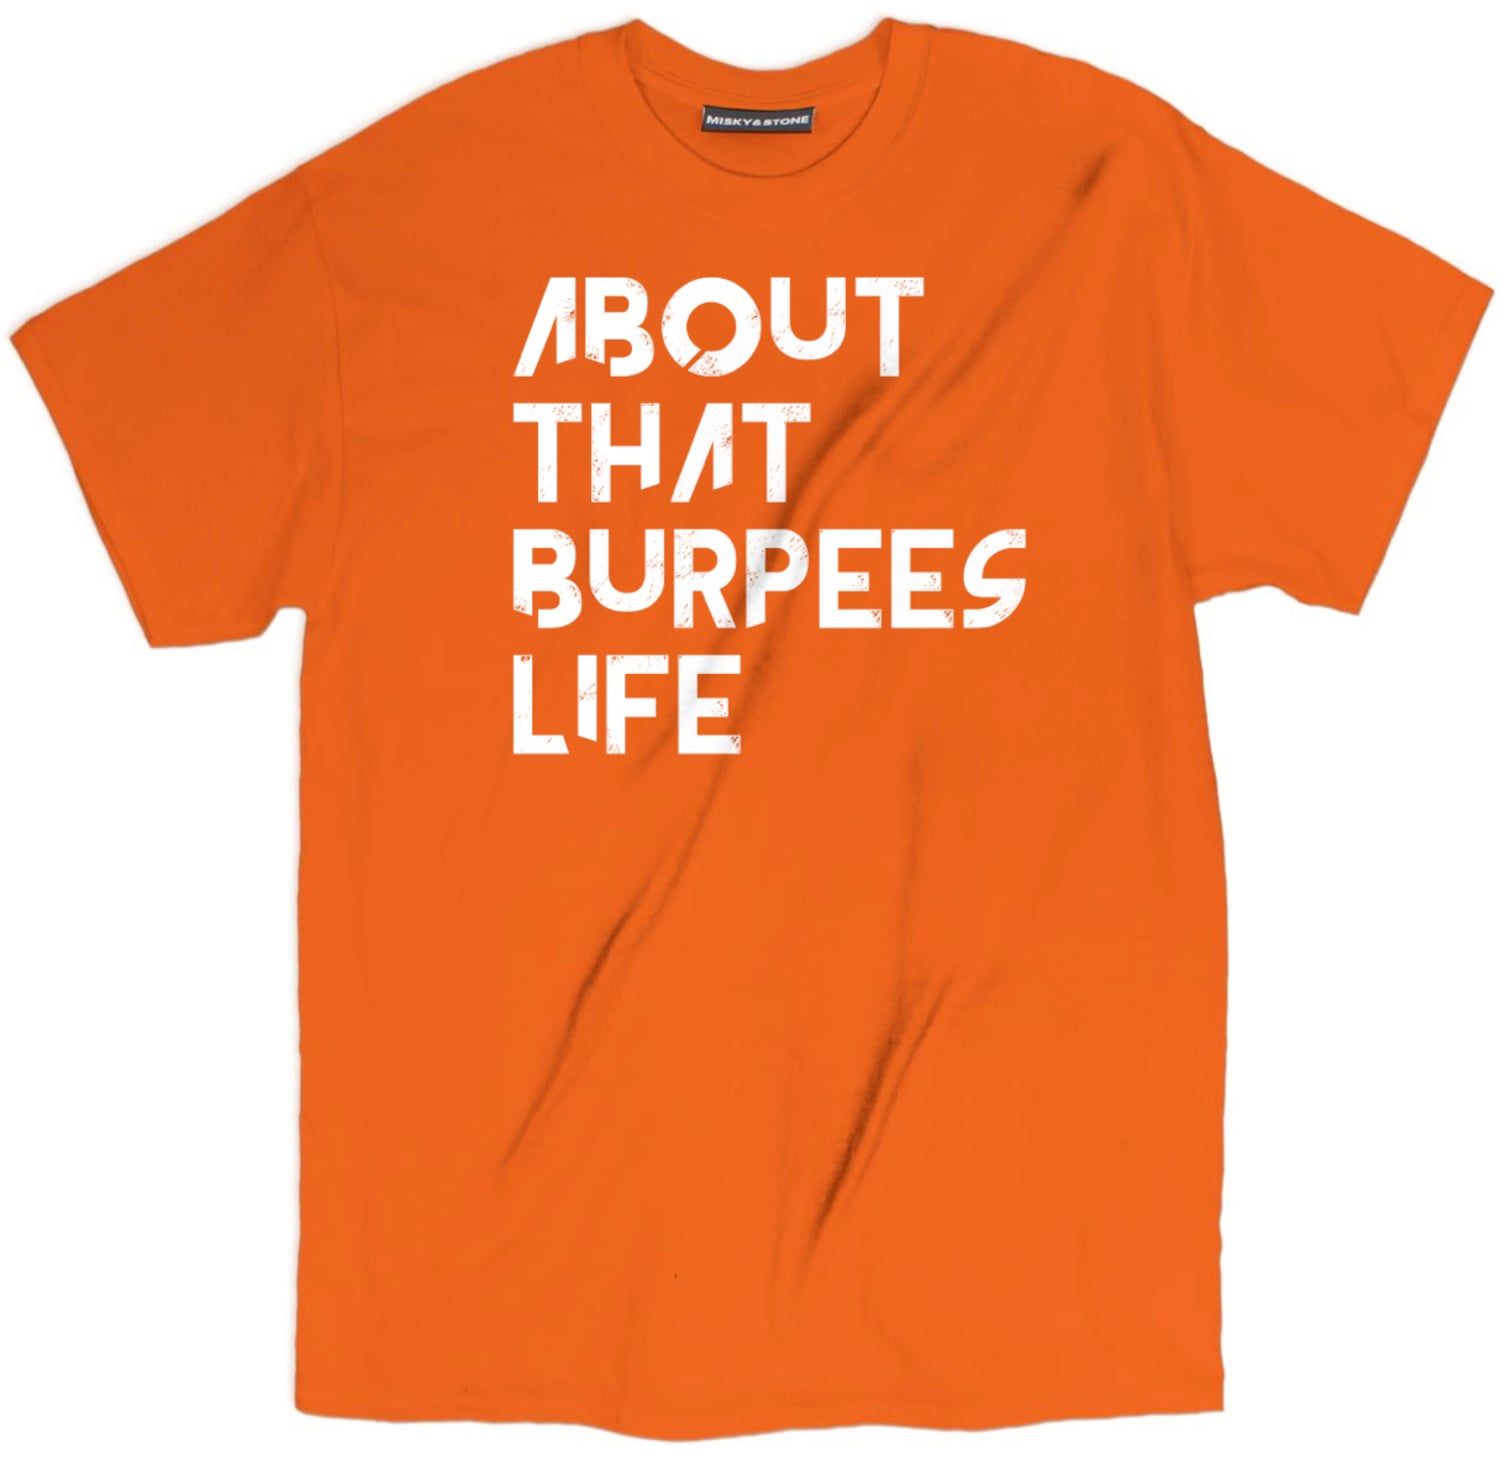 About That Burpees Life T Shirt